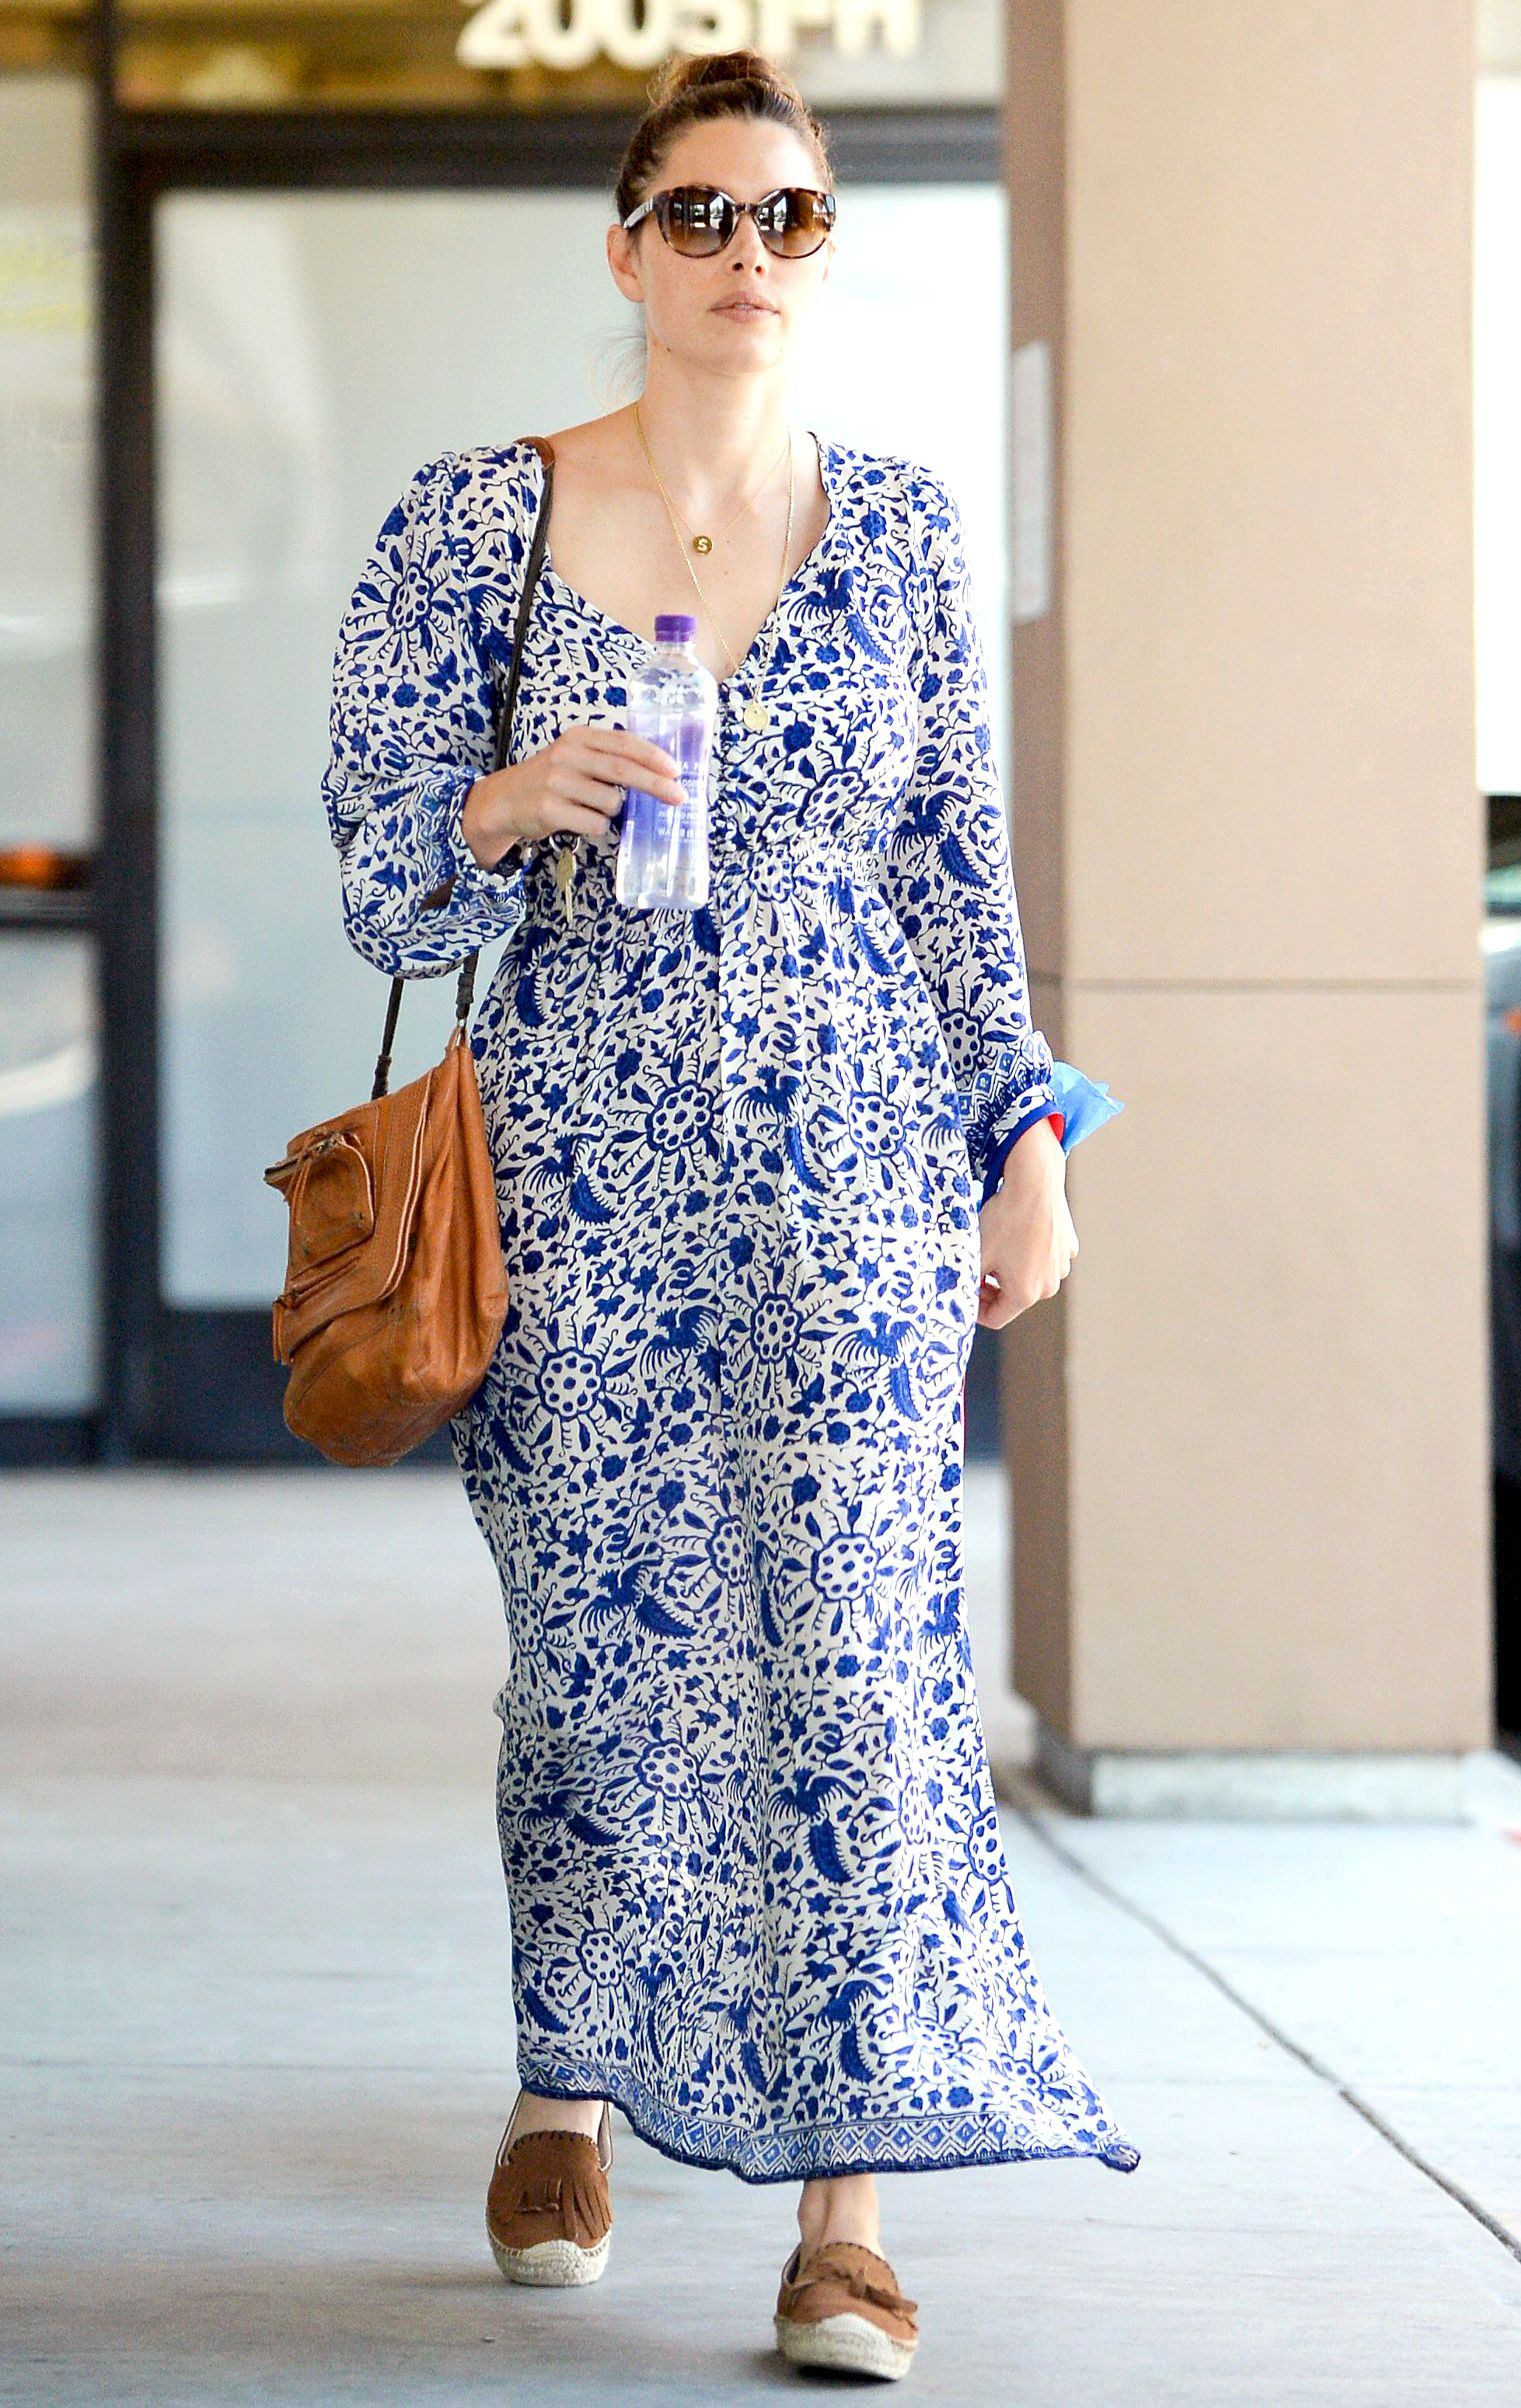 Jessica Biel Covered Her Post Baby Body In A Long Blue Dress When She Brought Dog To The Vet On Thursday Sept 17